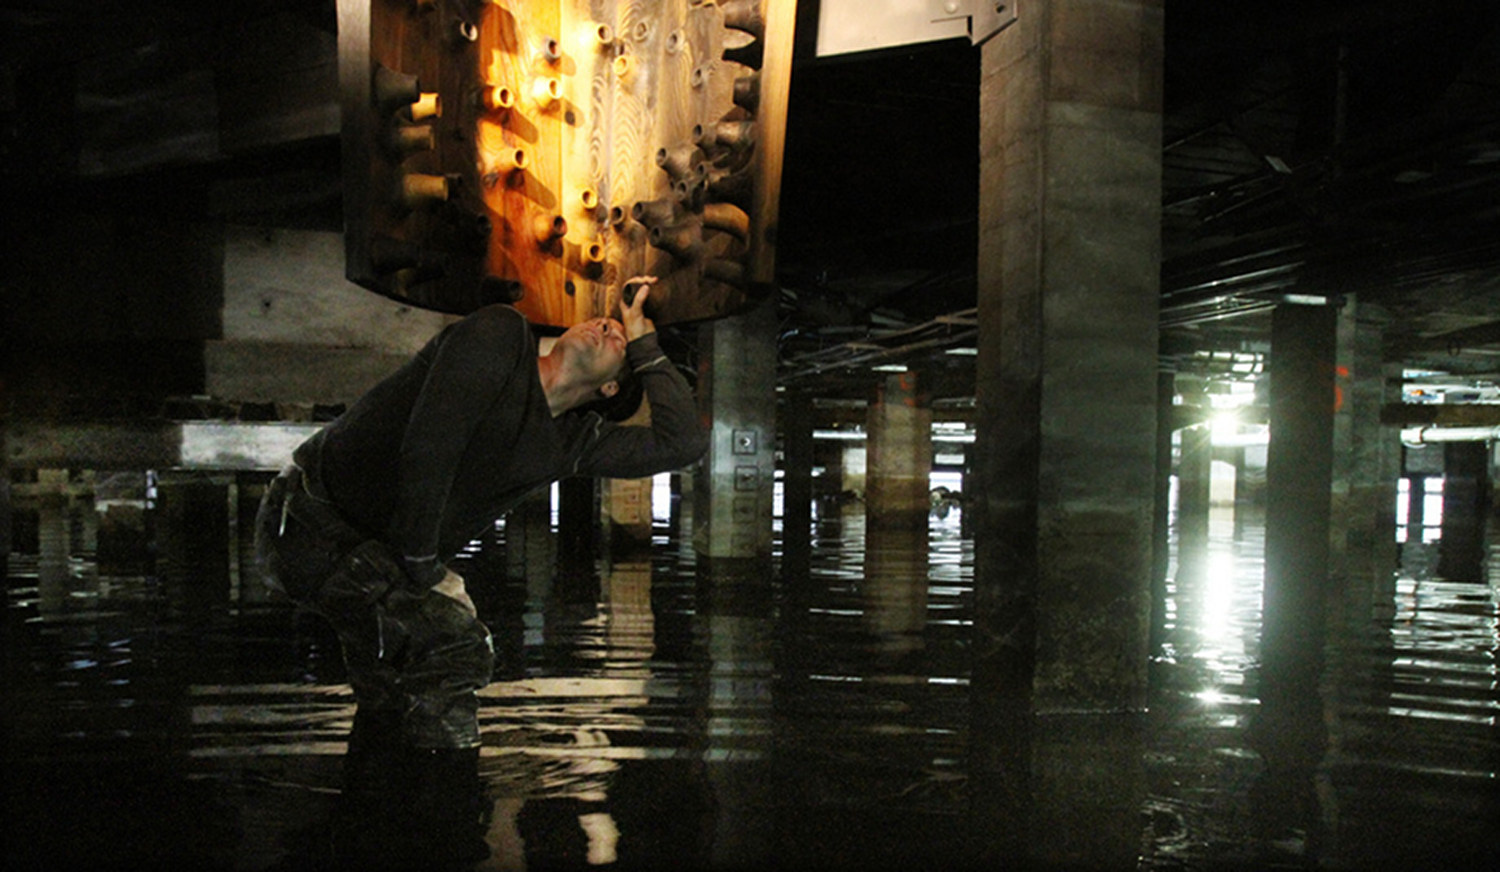 John inspecting lower parts of the sculpture, under the floor of the Armory